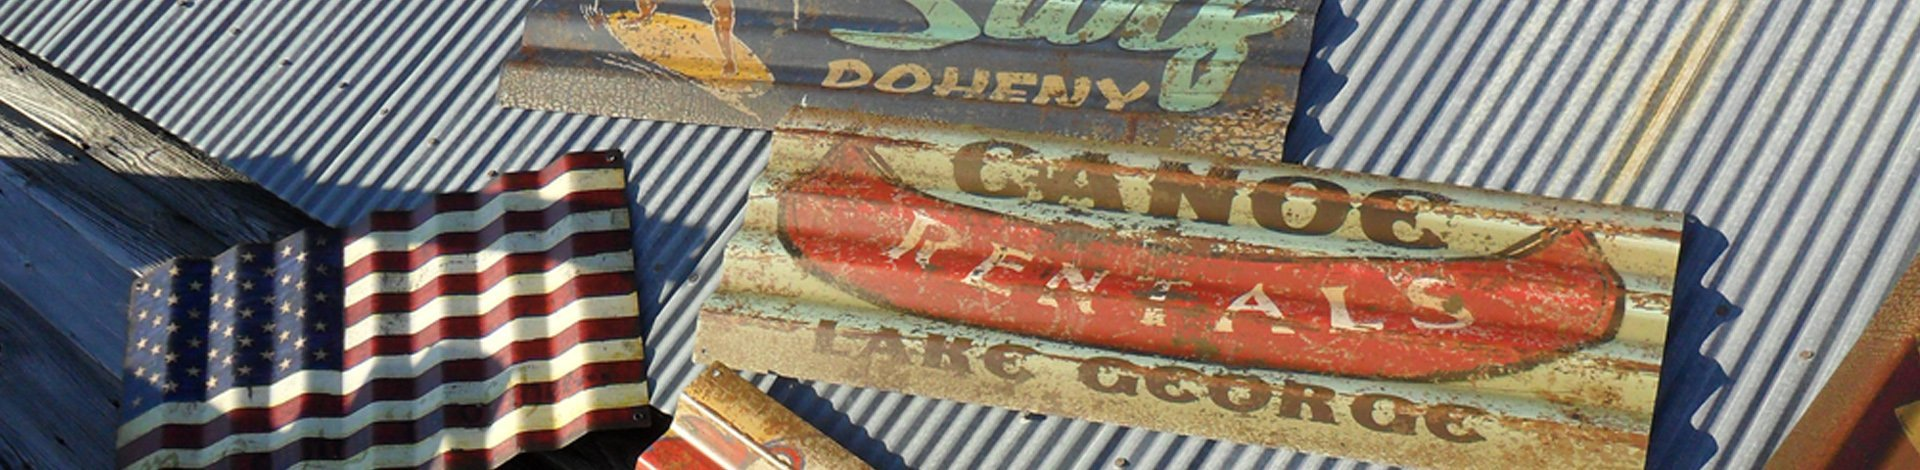 Unique Vintage Retro Wood and Metal Signs Made in the USA